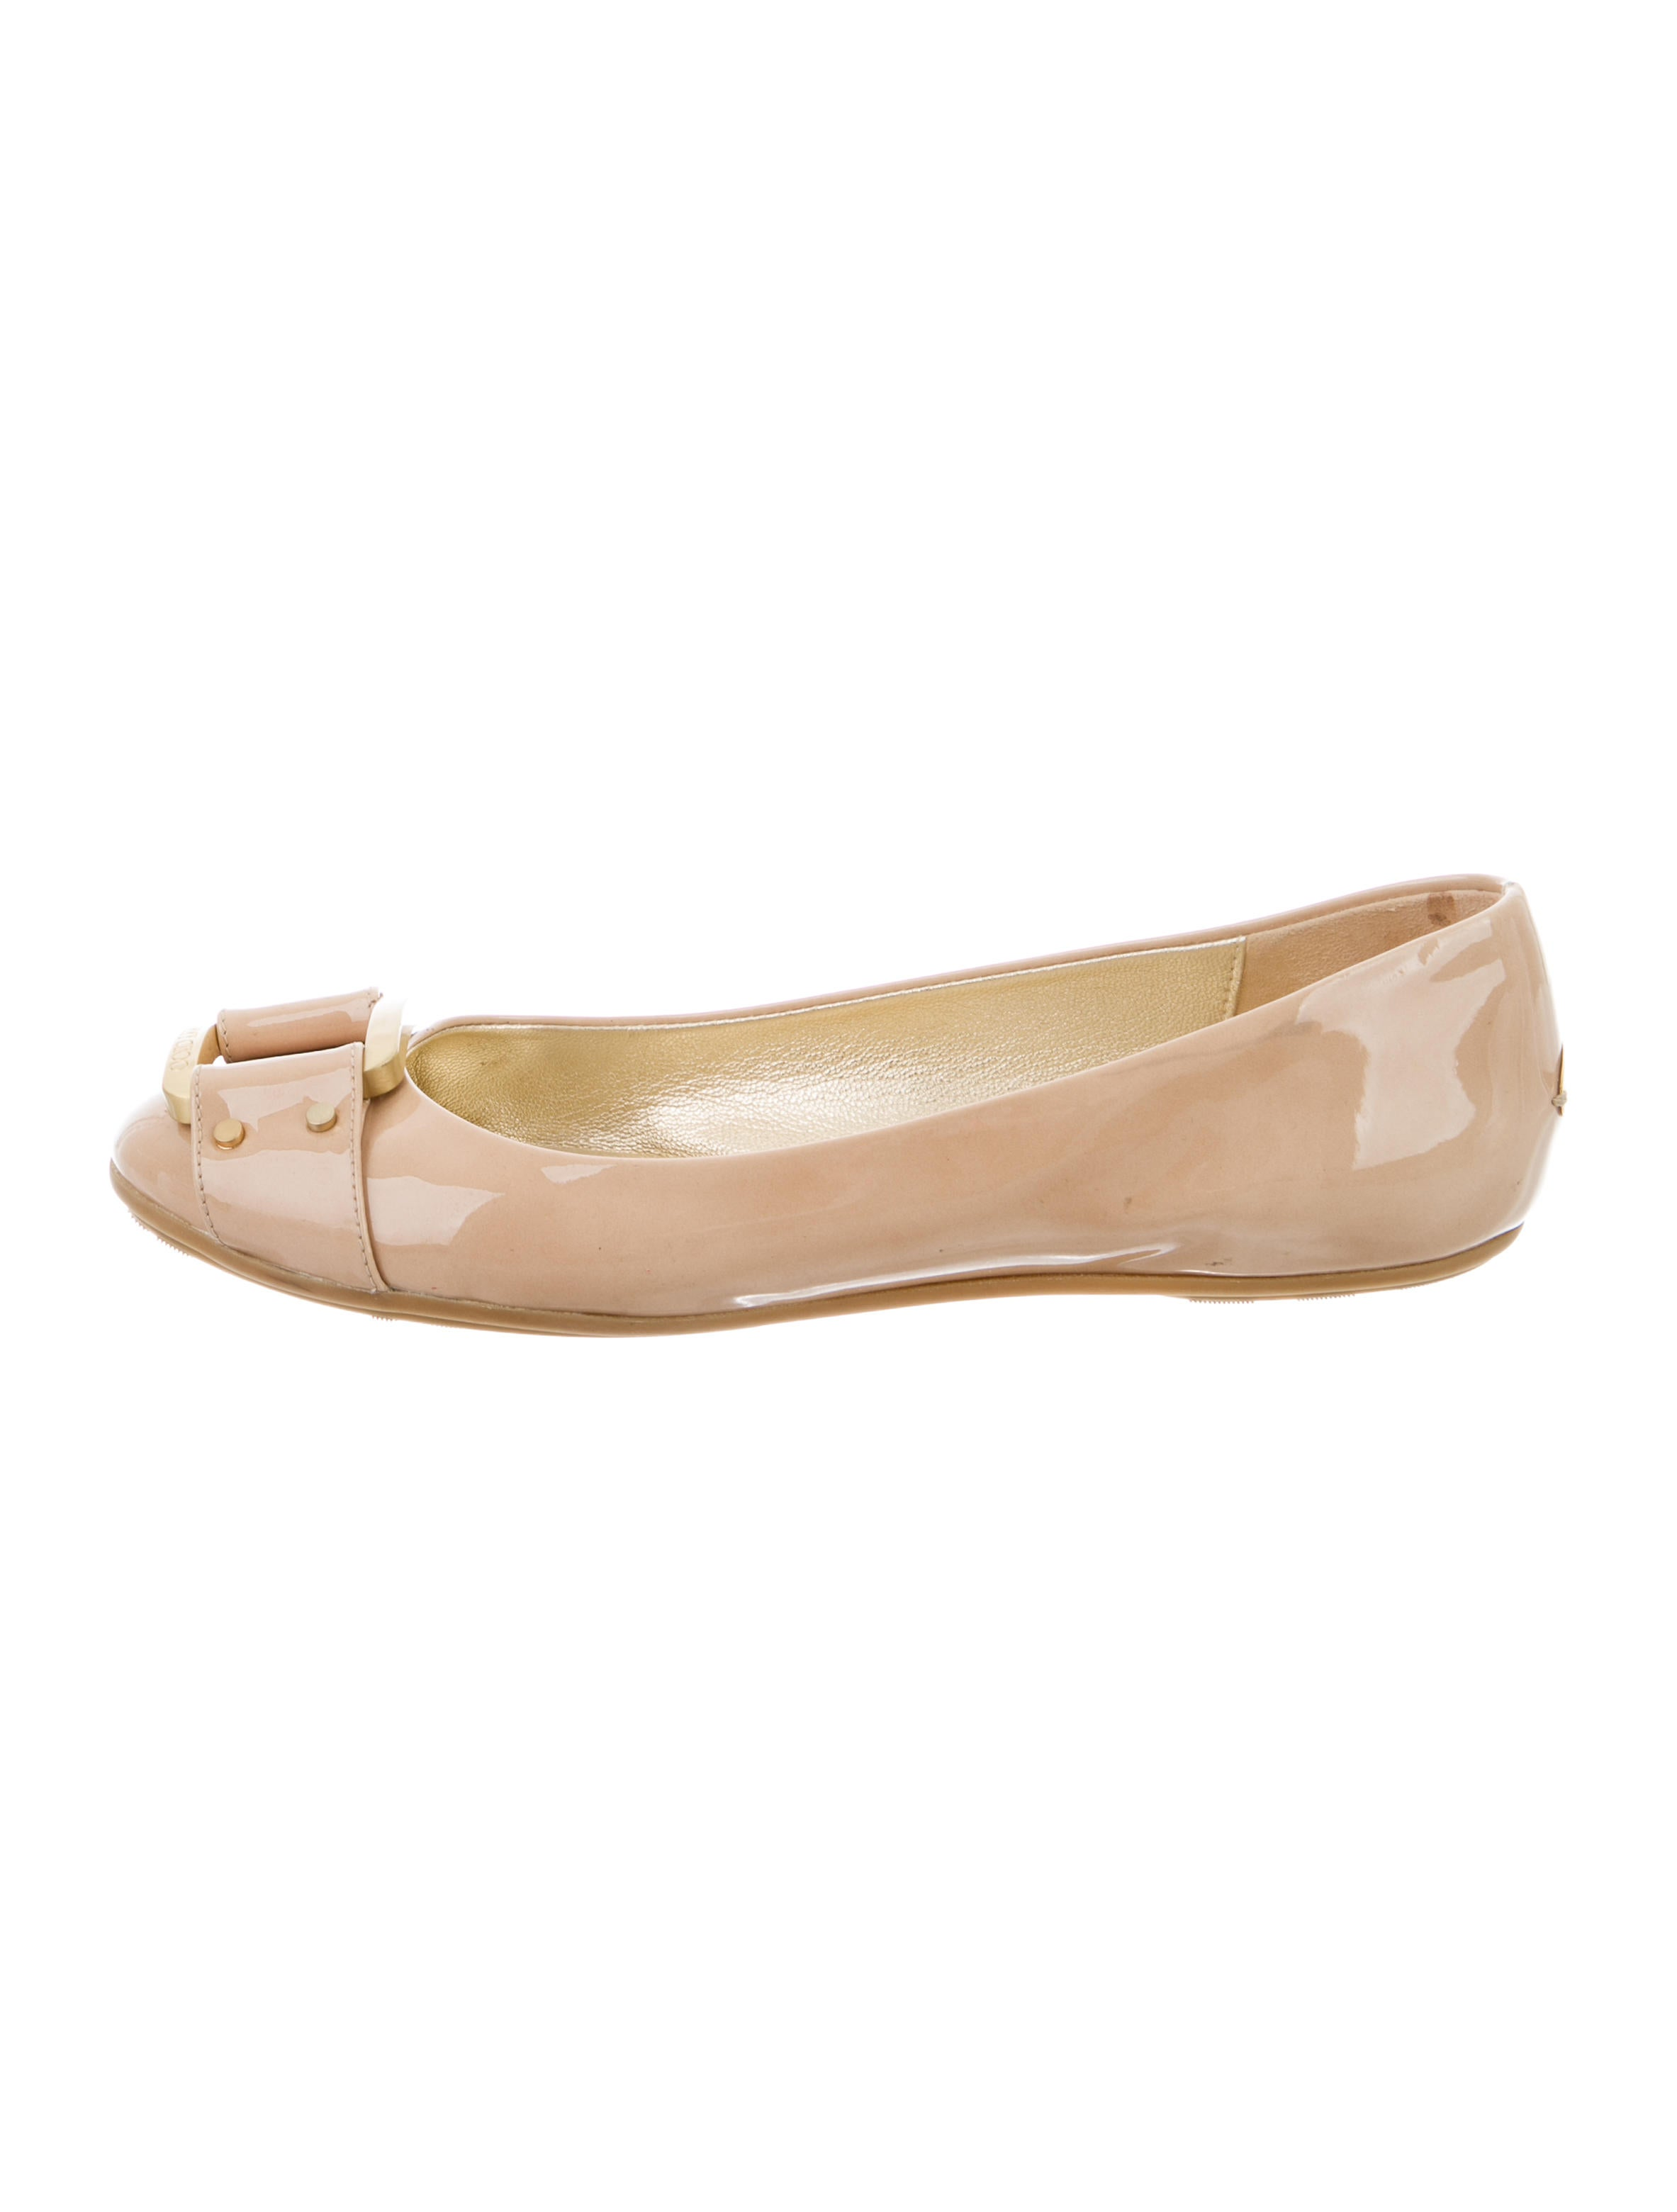 jimmy choo patent leather flats shoes jim60527 the